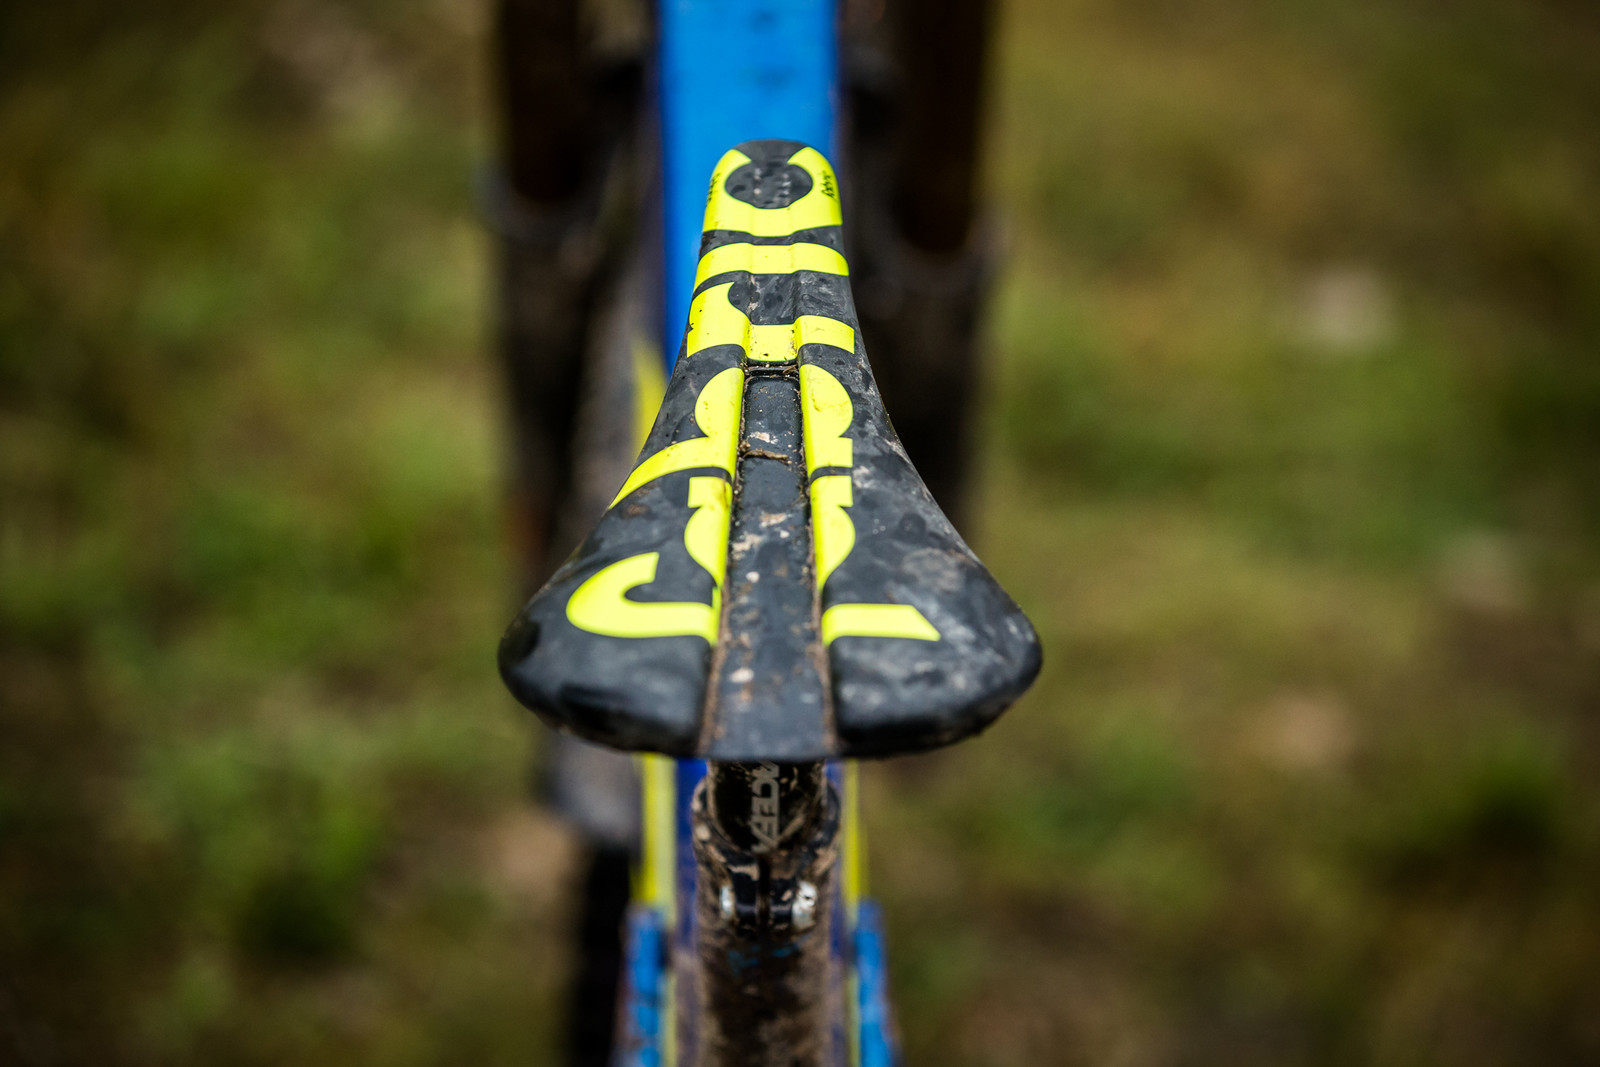 Fabric Saddle - WINNING BIKE - Martin Maes' GT Fury - Mountain Biking Pictures - Vital MTB